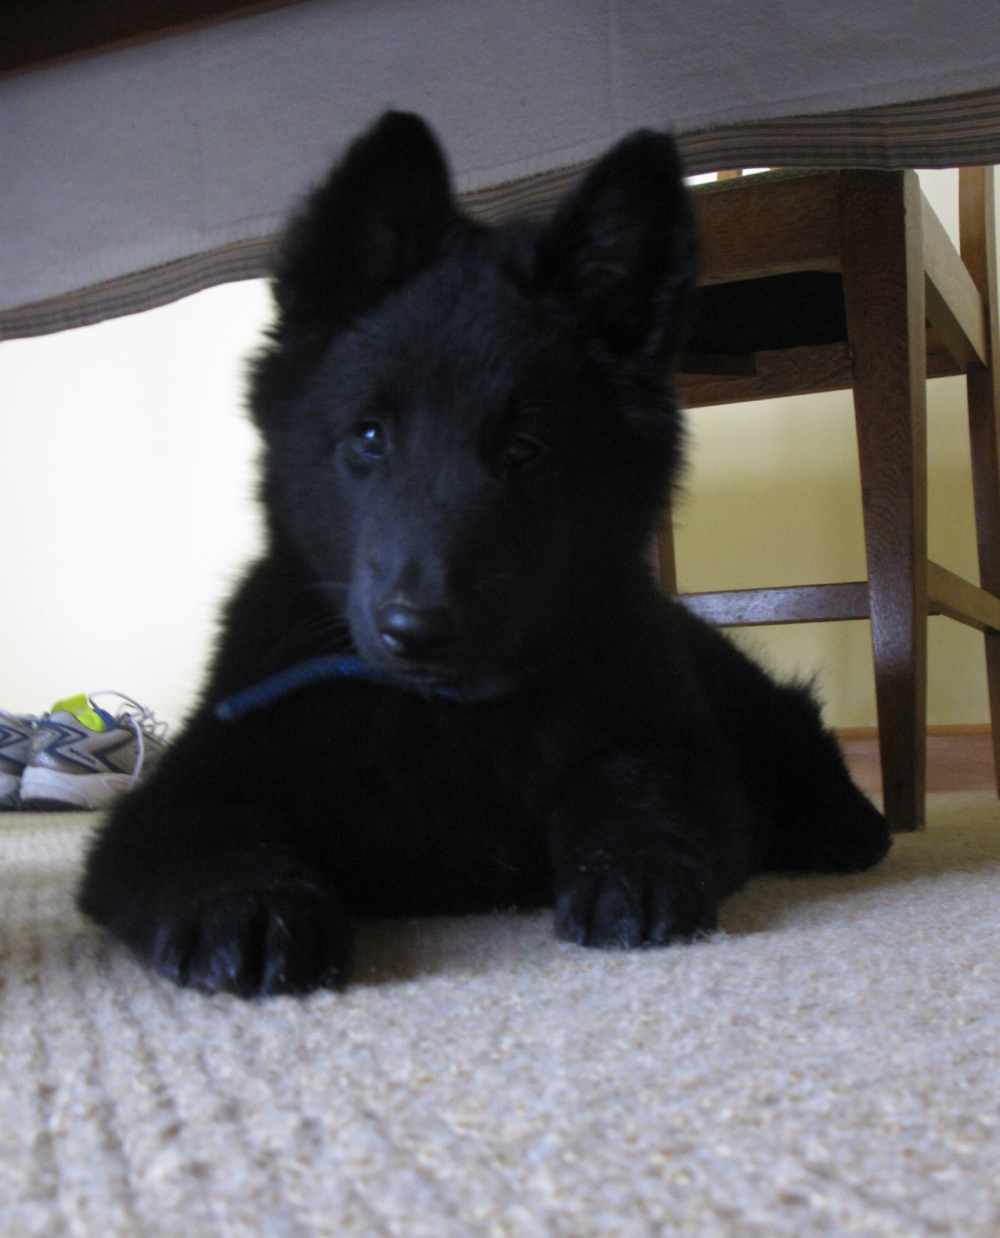 Bear Dogs 10 Dogs That Look Like Bears Healthy Paws